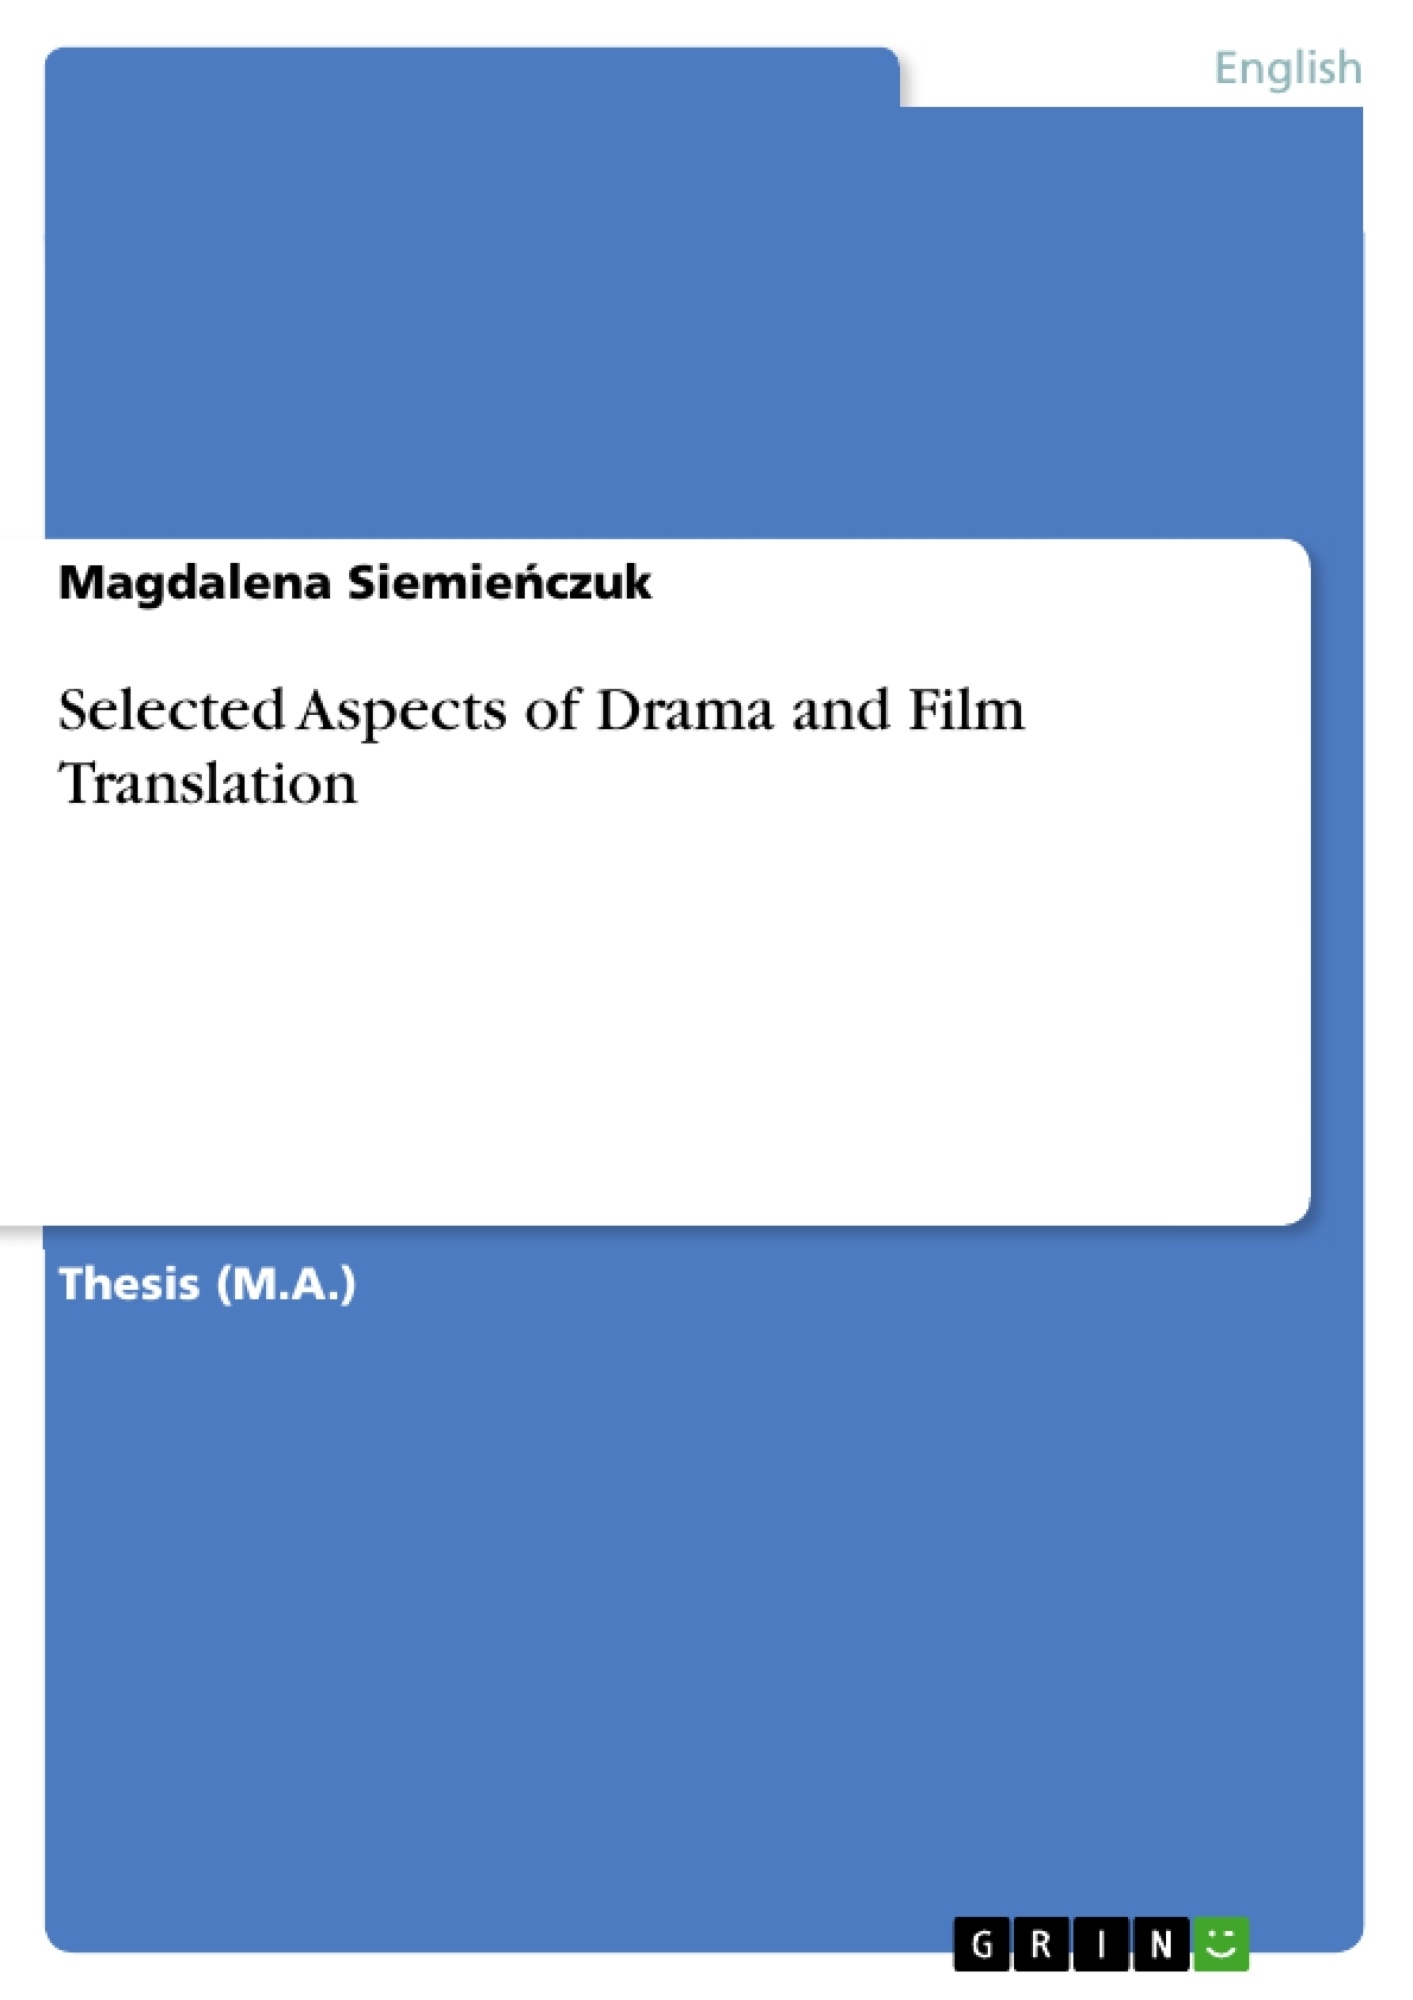 Title: Selected Aspects of Drama and Film Translation